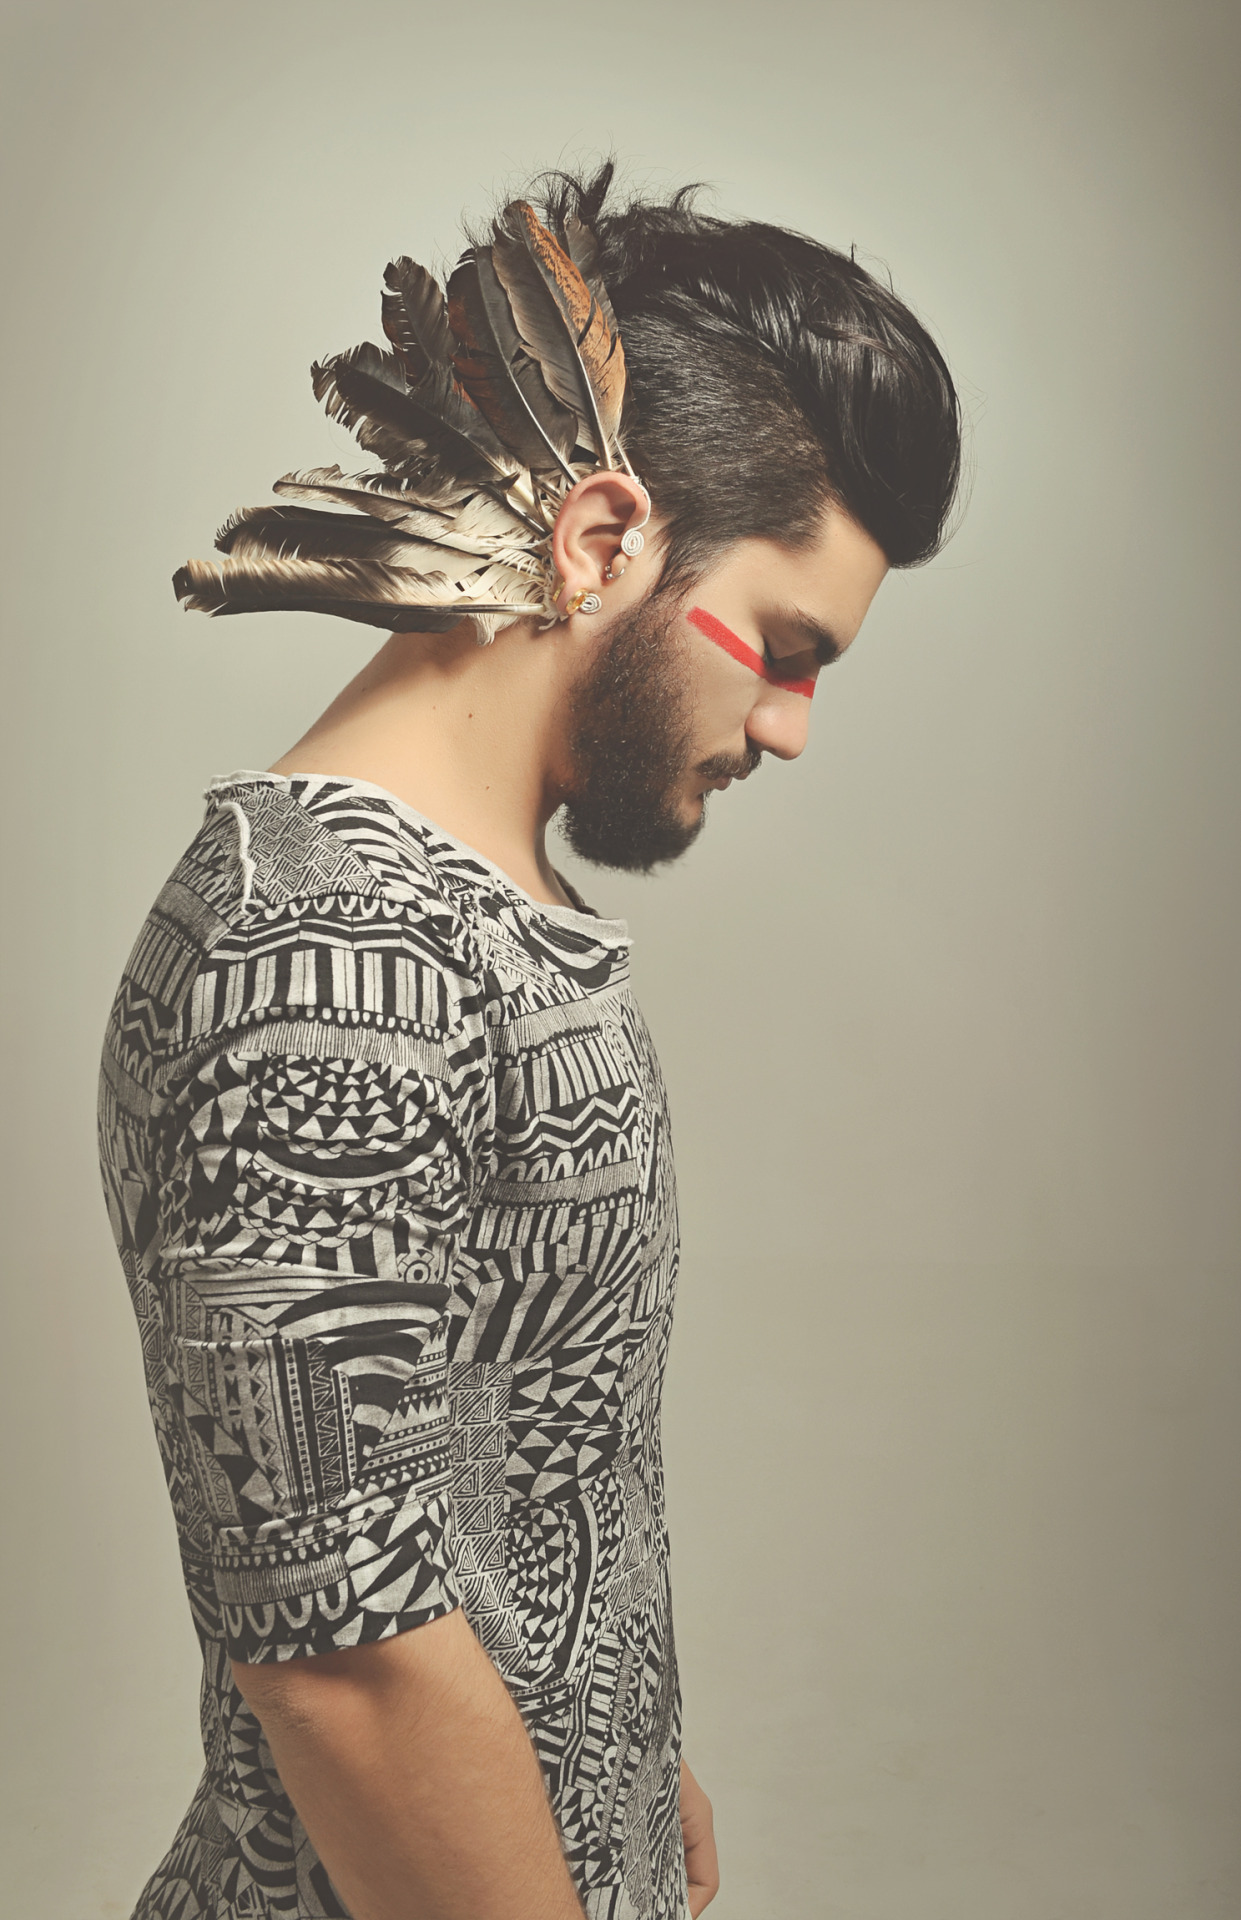 Caiomotta Indie Aztec feathers hipster Men's fashion on ...